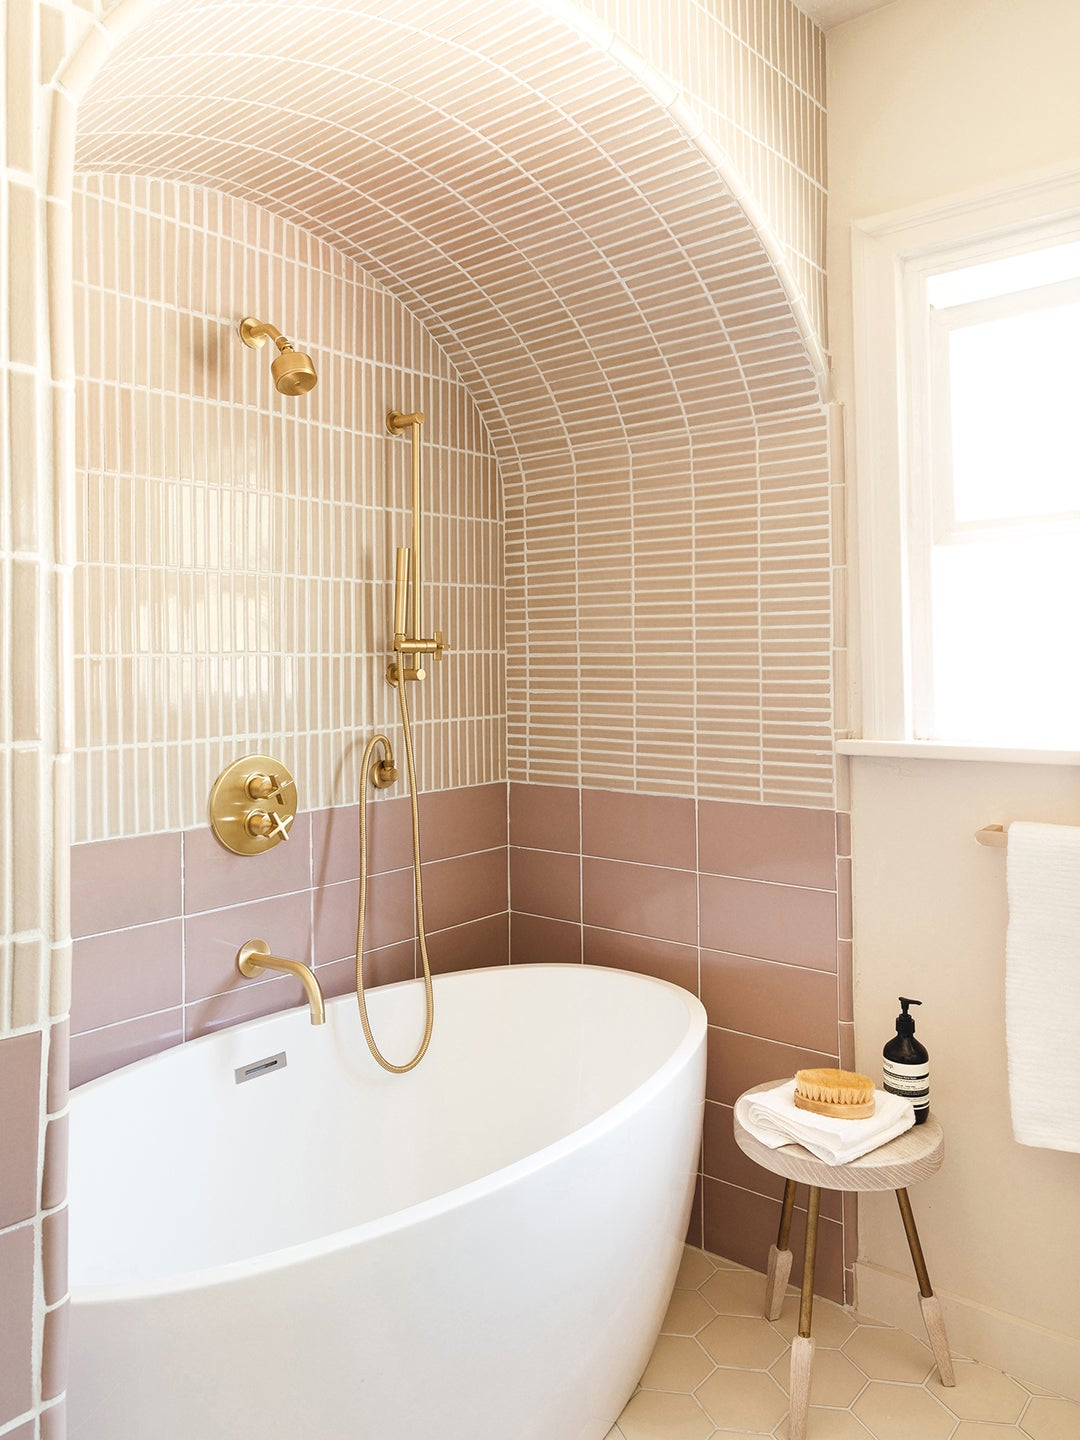 The Addition That Made This Bathroom's 1920s Archways Feel Right for 2021